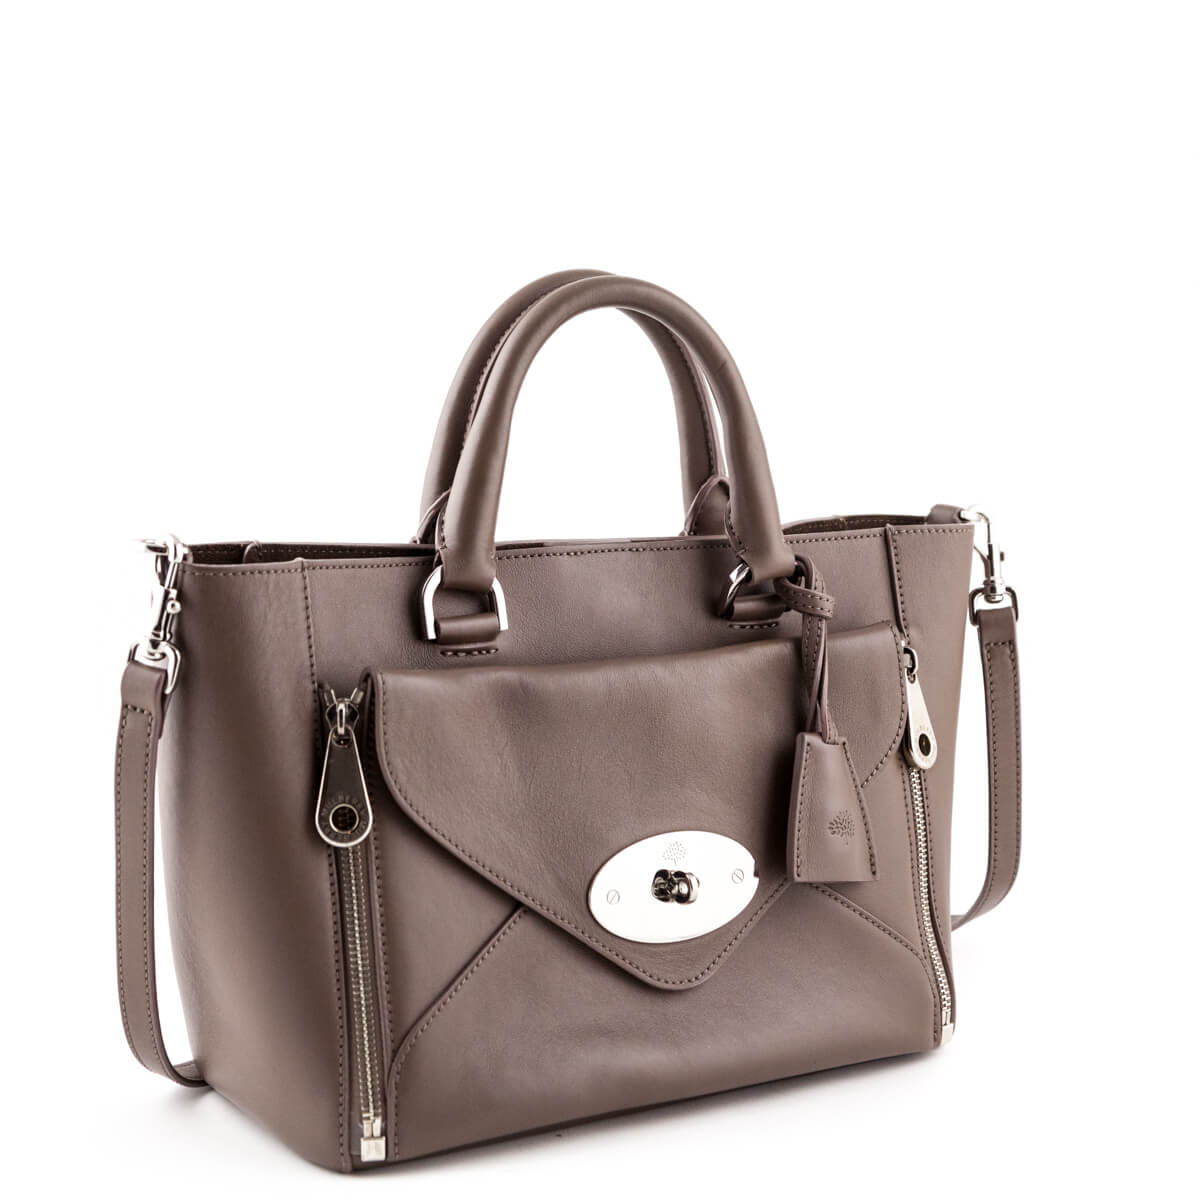 168924e22b0 ... Mulberry Taupe Calfskin Small Willow Bag - LOVE that BAG - Preowned  Authentic Designer Handbags ...